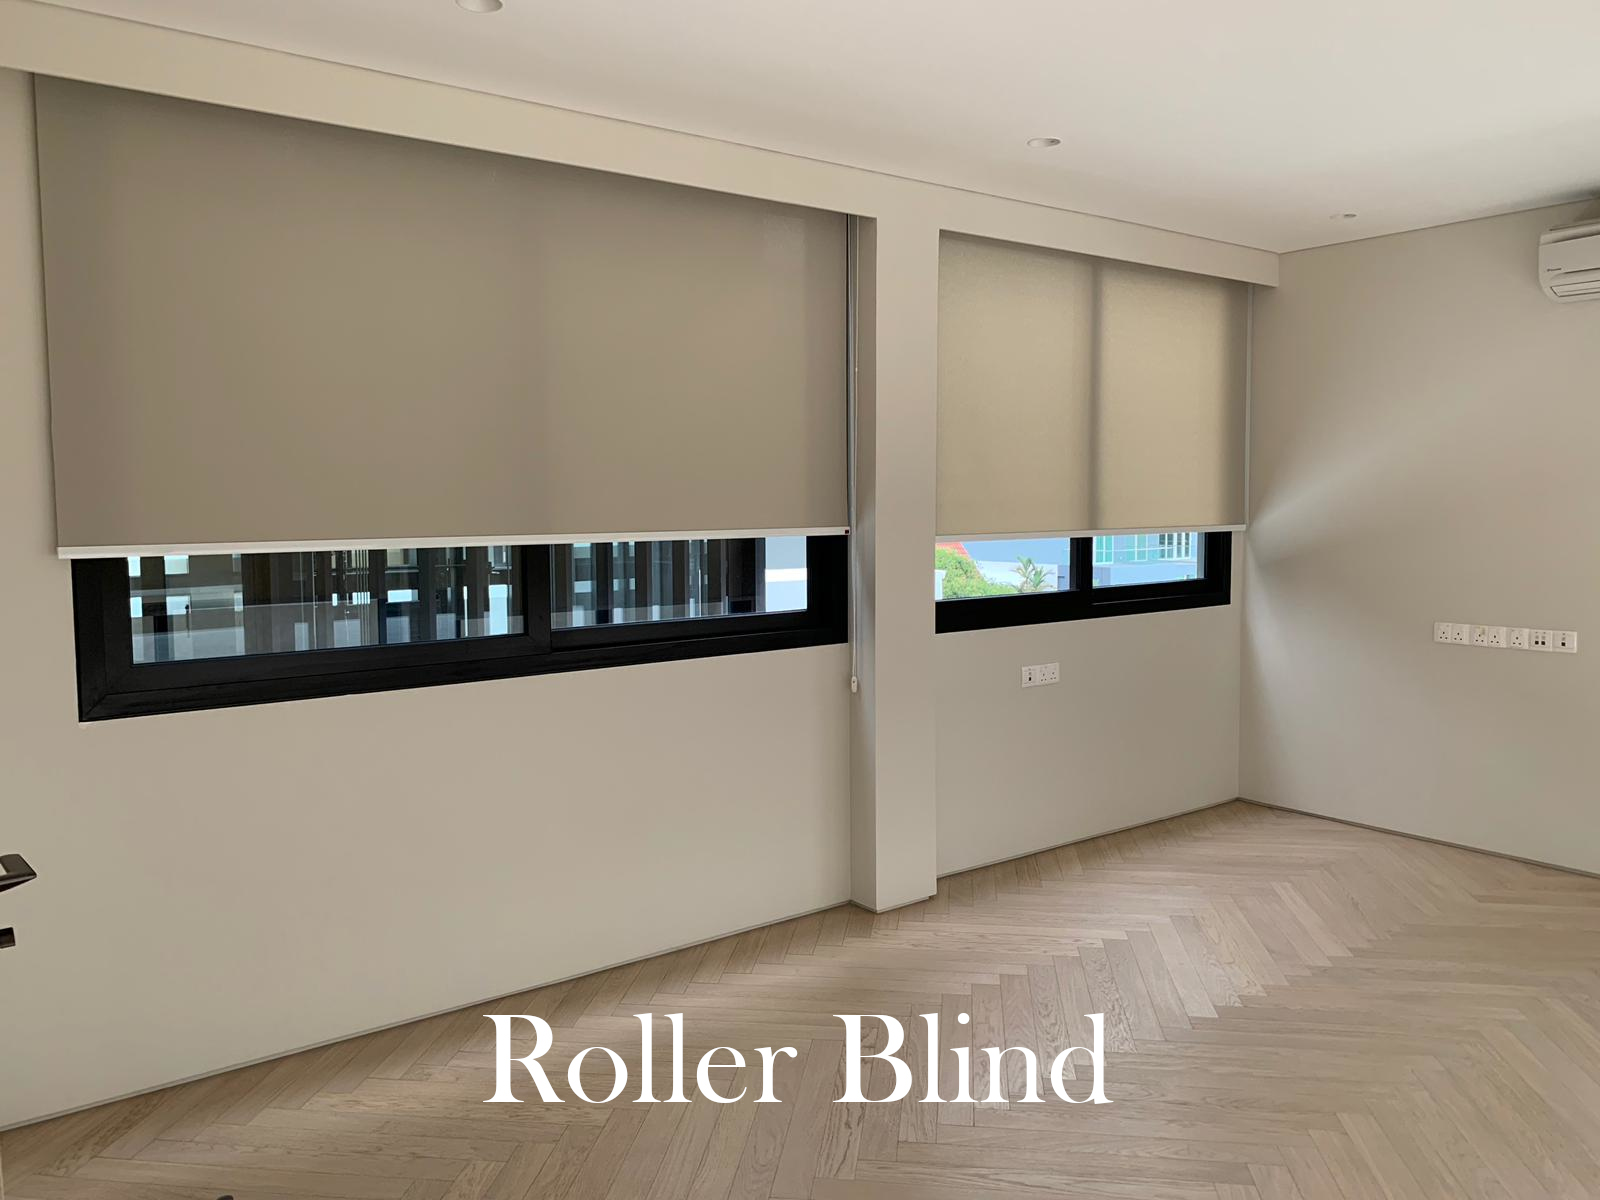 Cypress Avenue Roller Blind 10